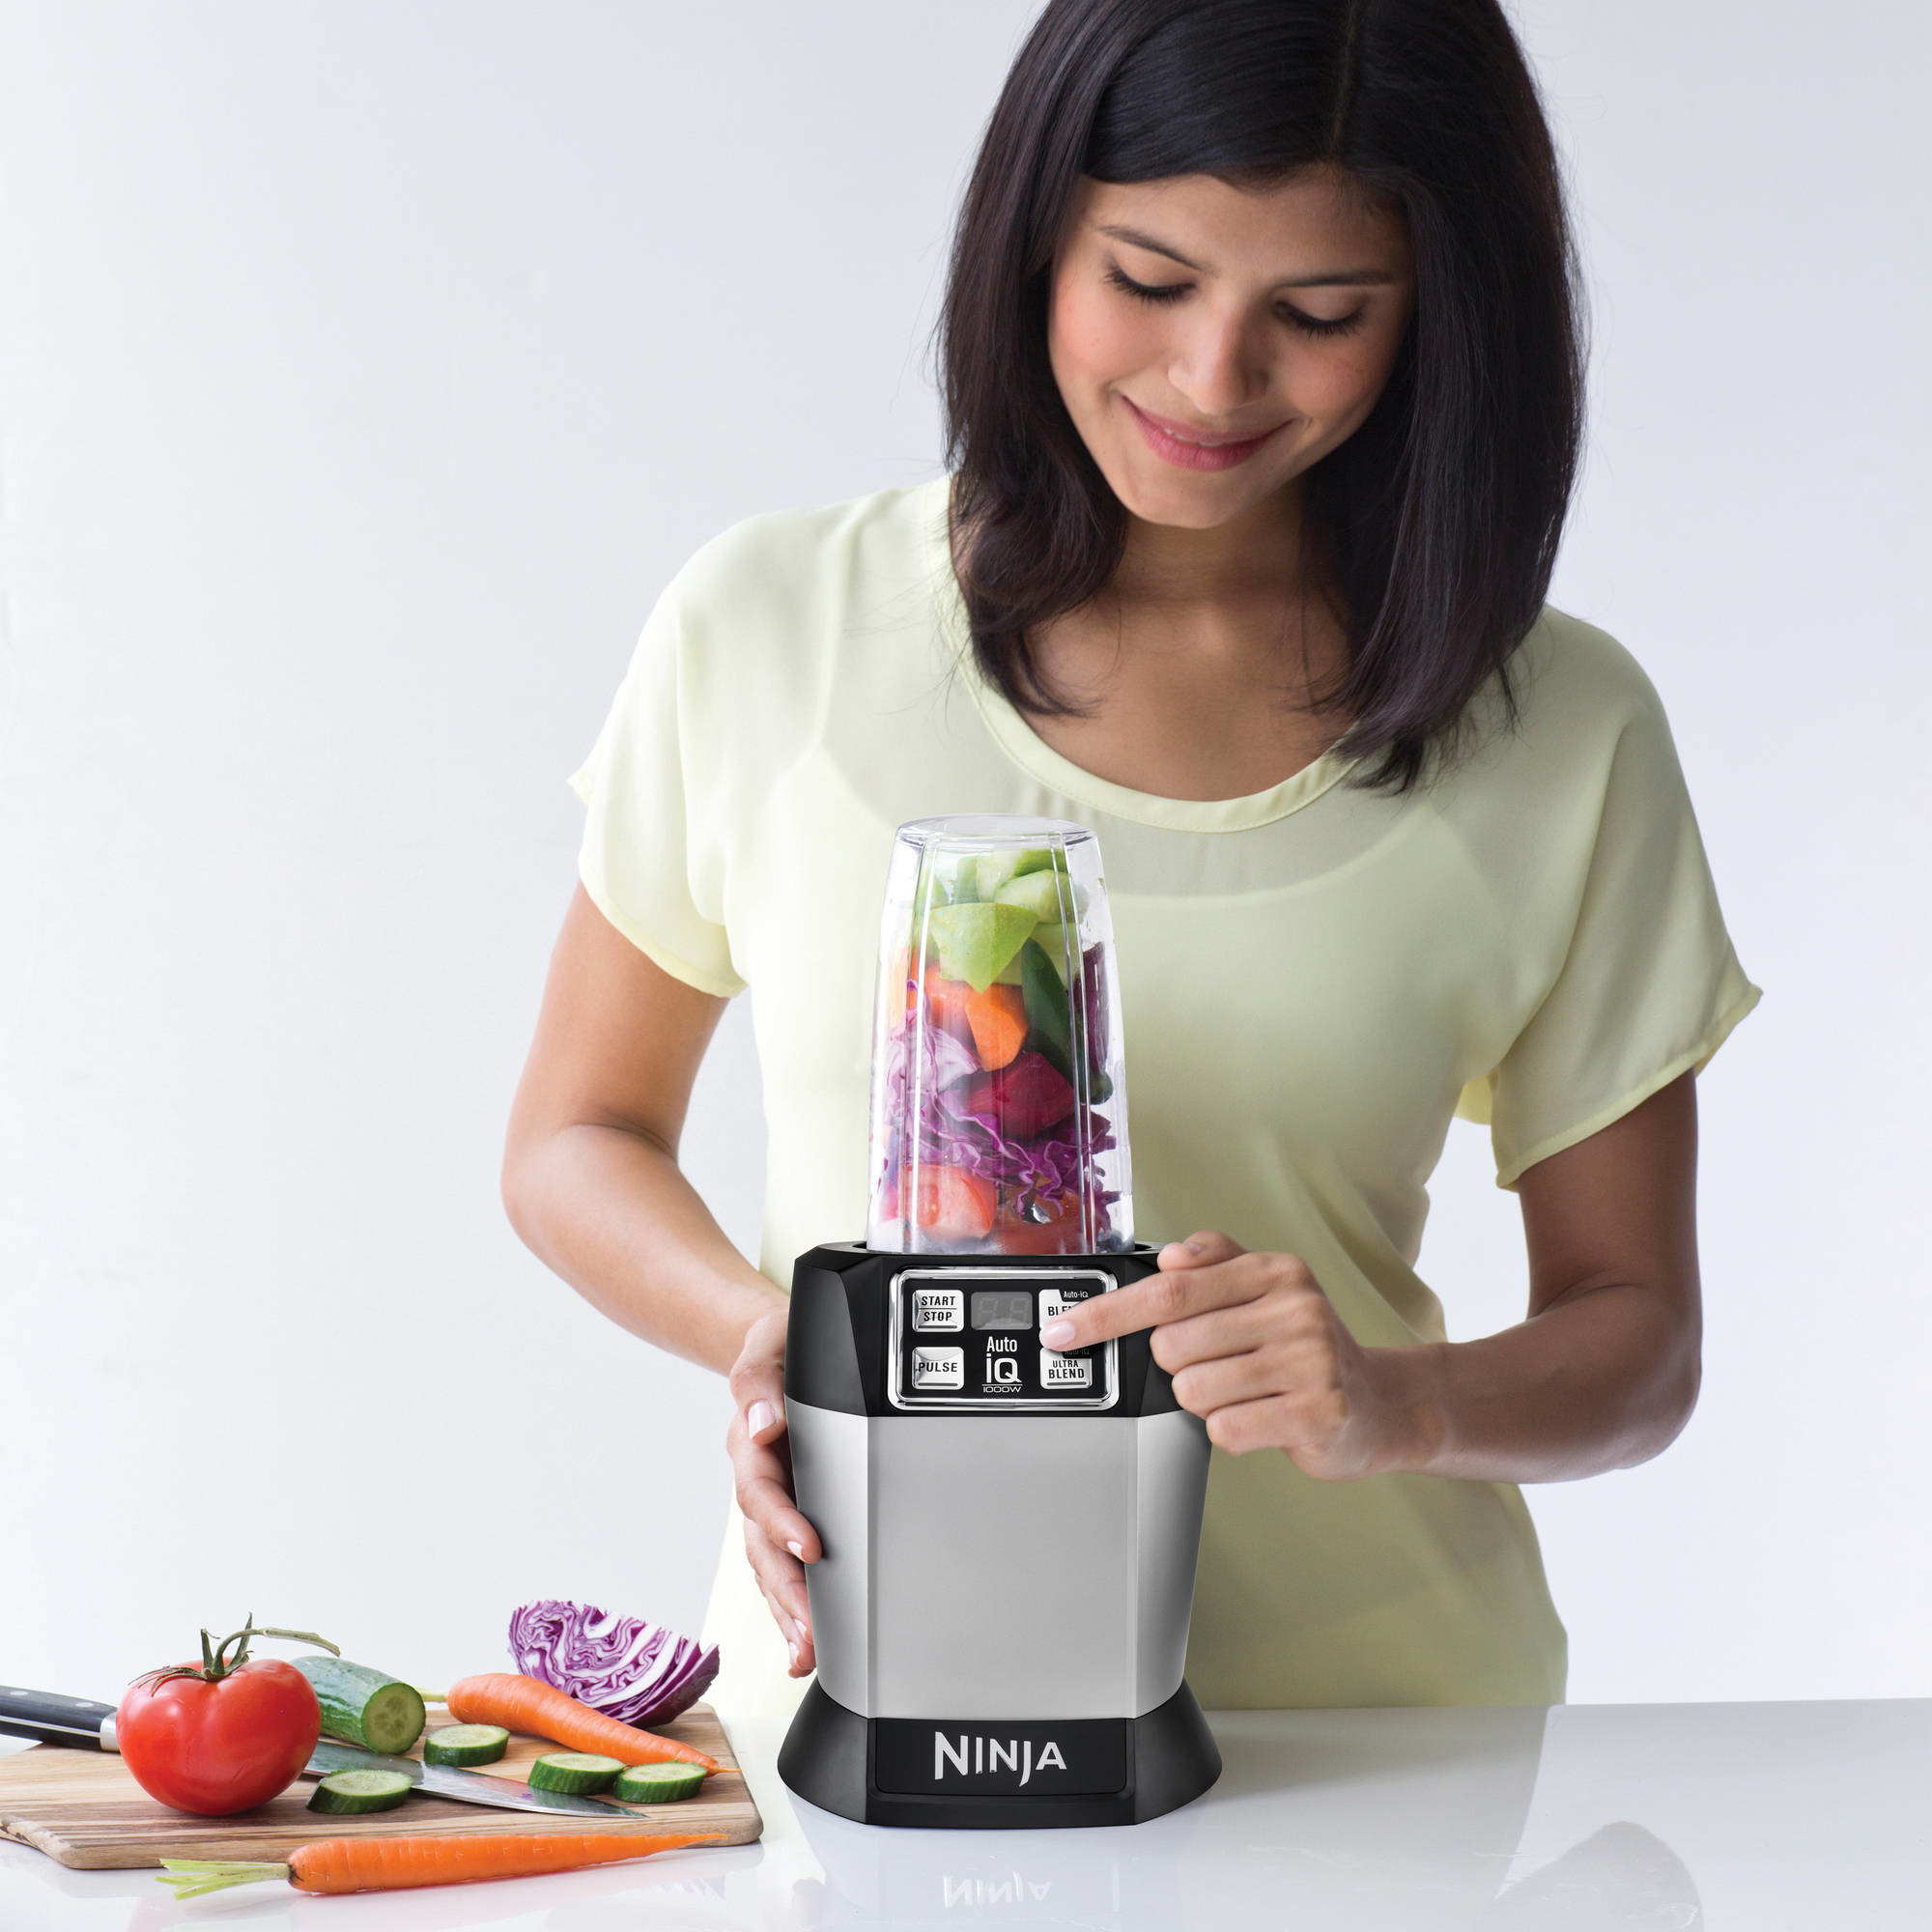 Model is pressing a button on a Ninja blender with veggies inside